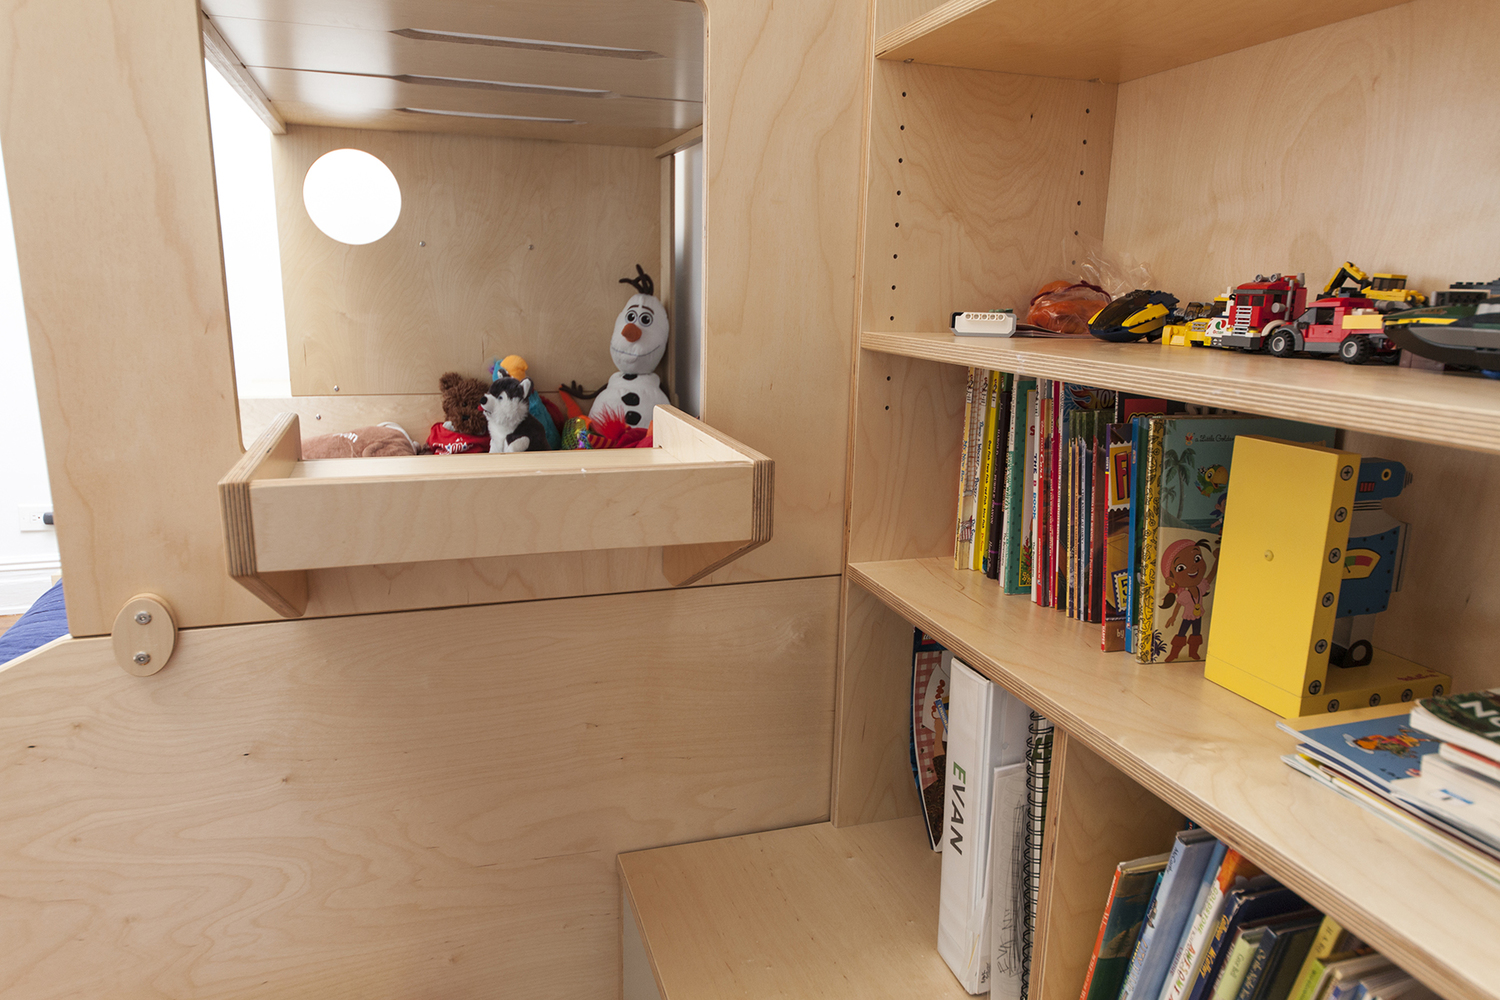 Casa Kids storage cabinets with open shelving